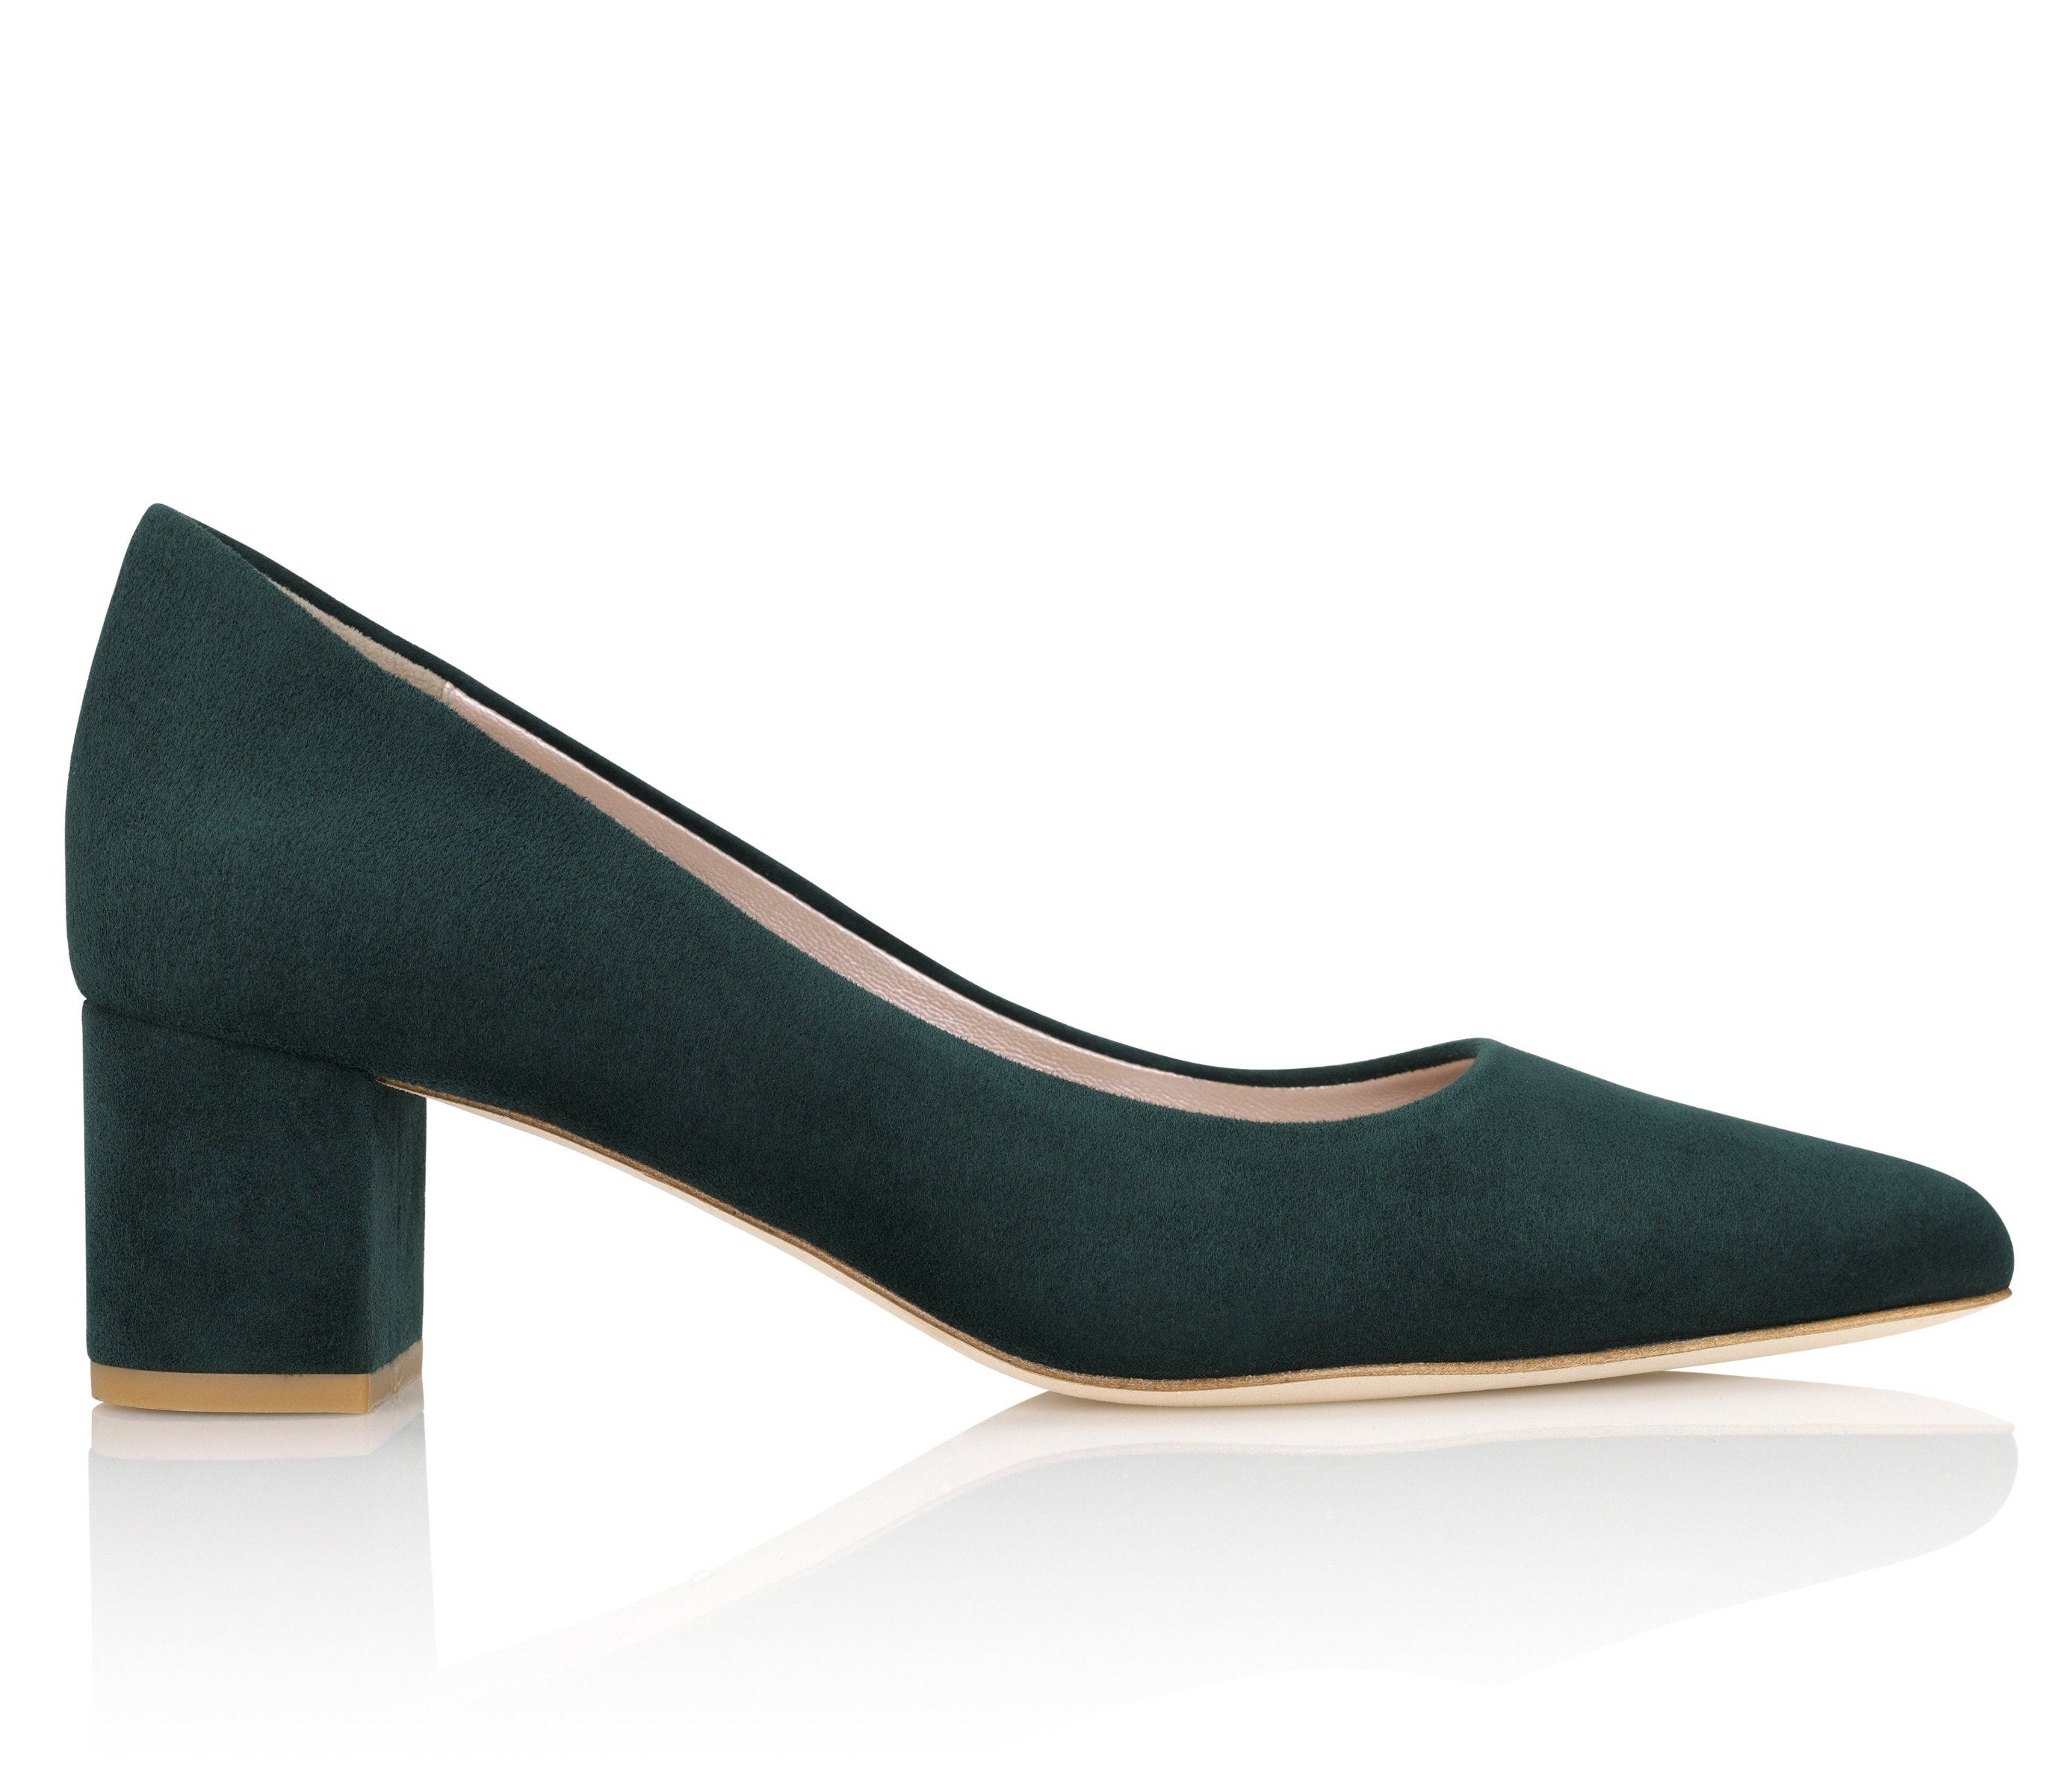 Dark Green Suede Block Heel Court Shoe Designed By Emmy London